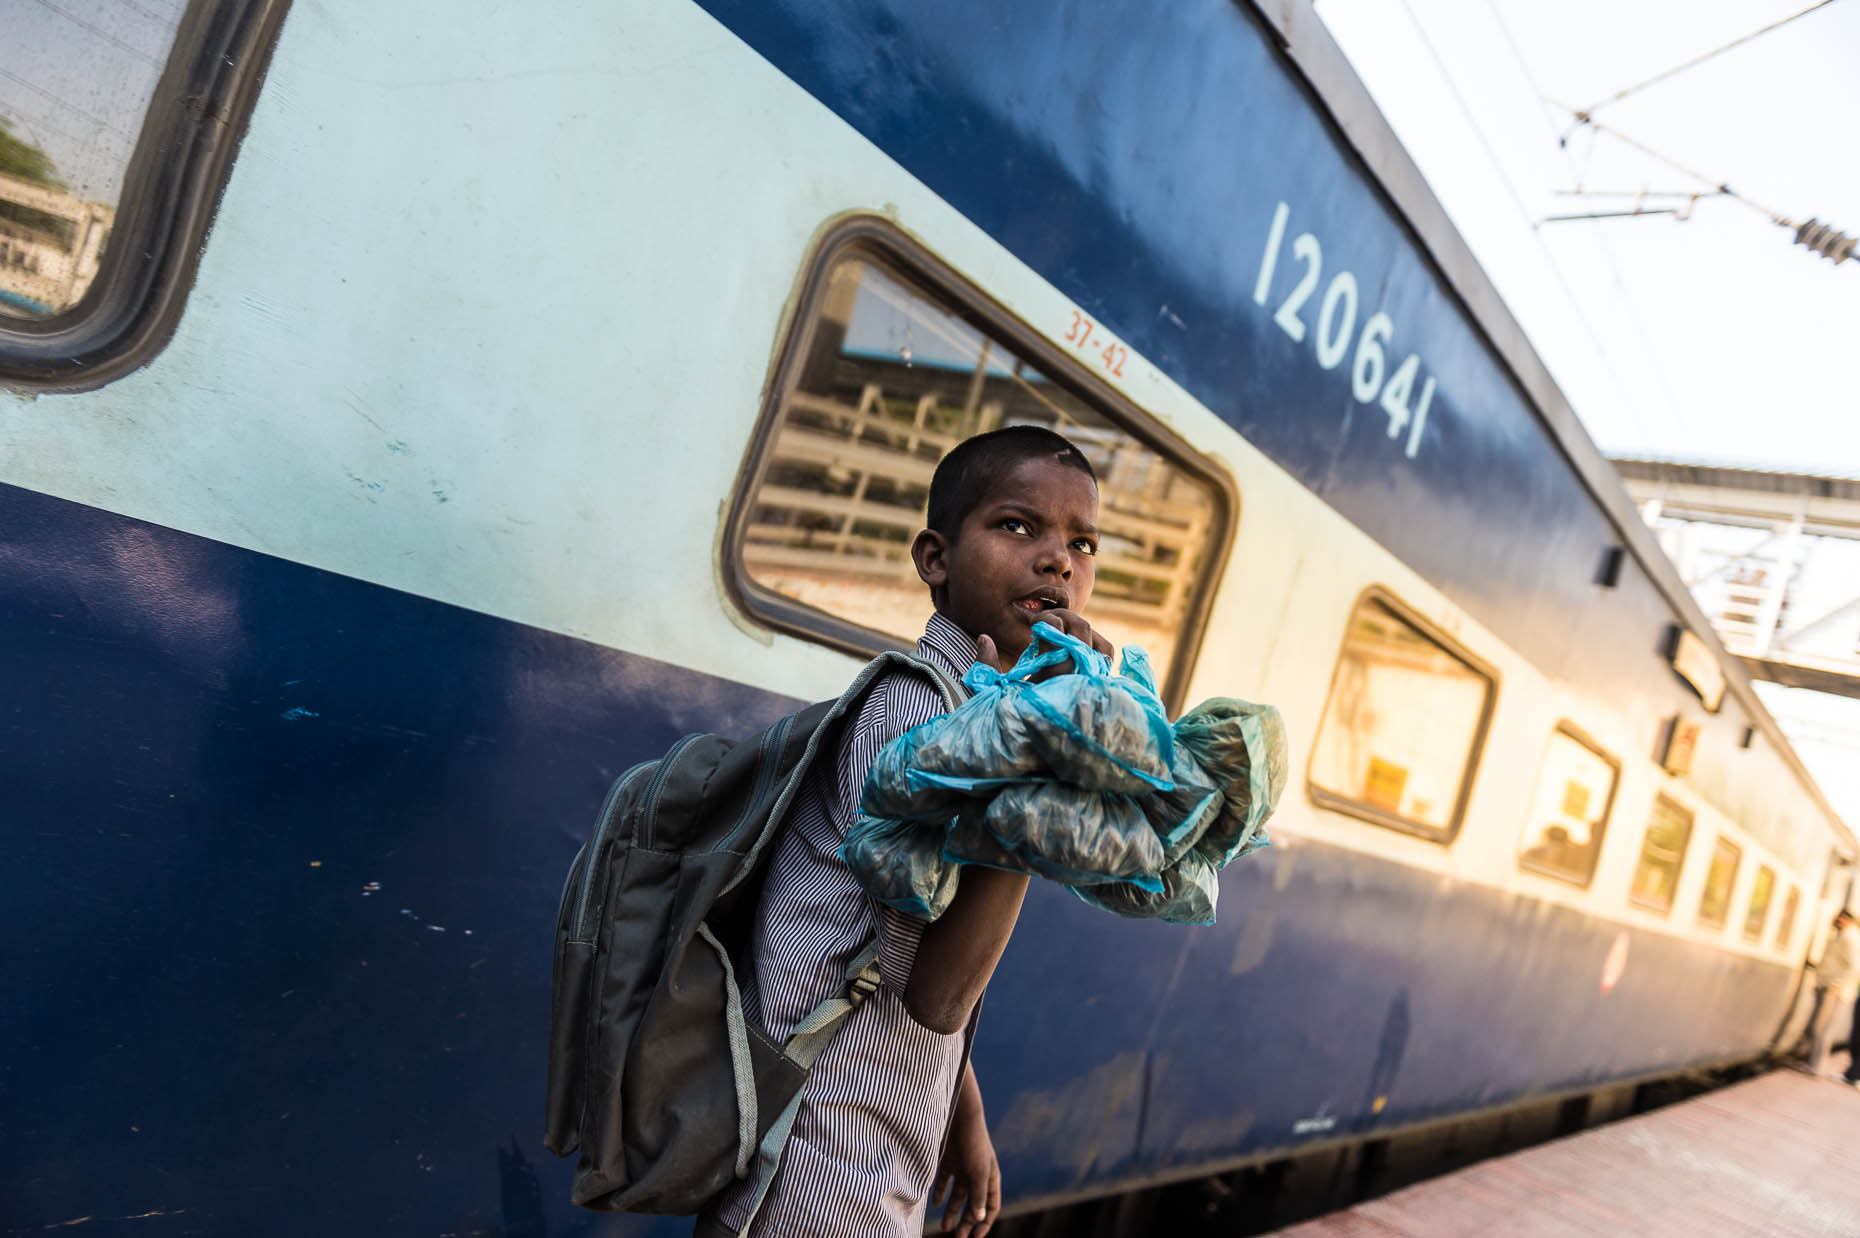 Street-child-at-train-at-train-station-India